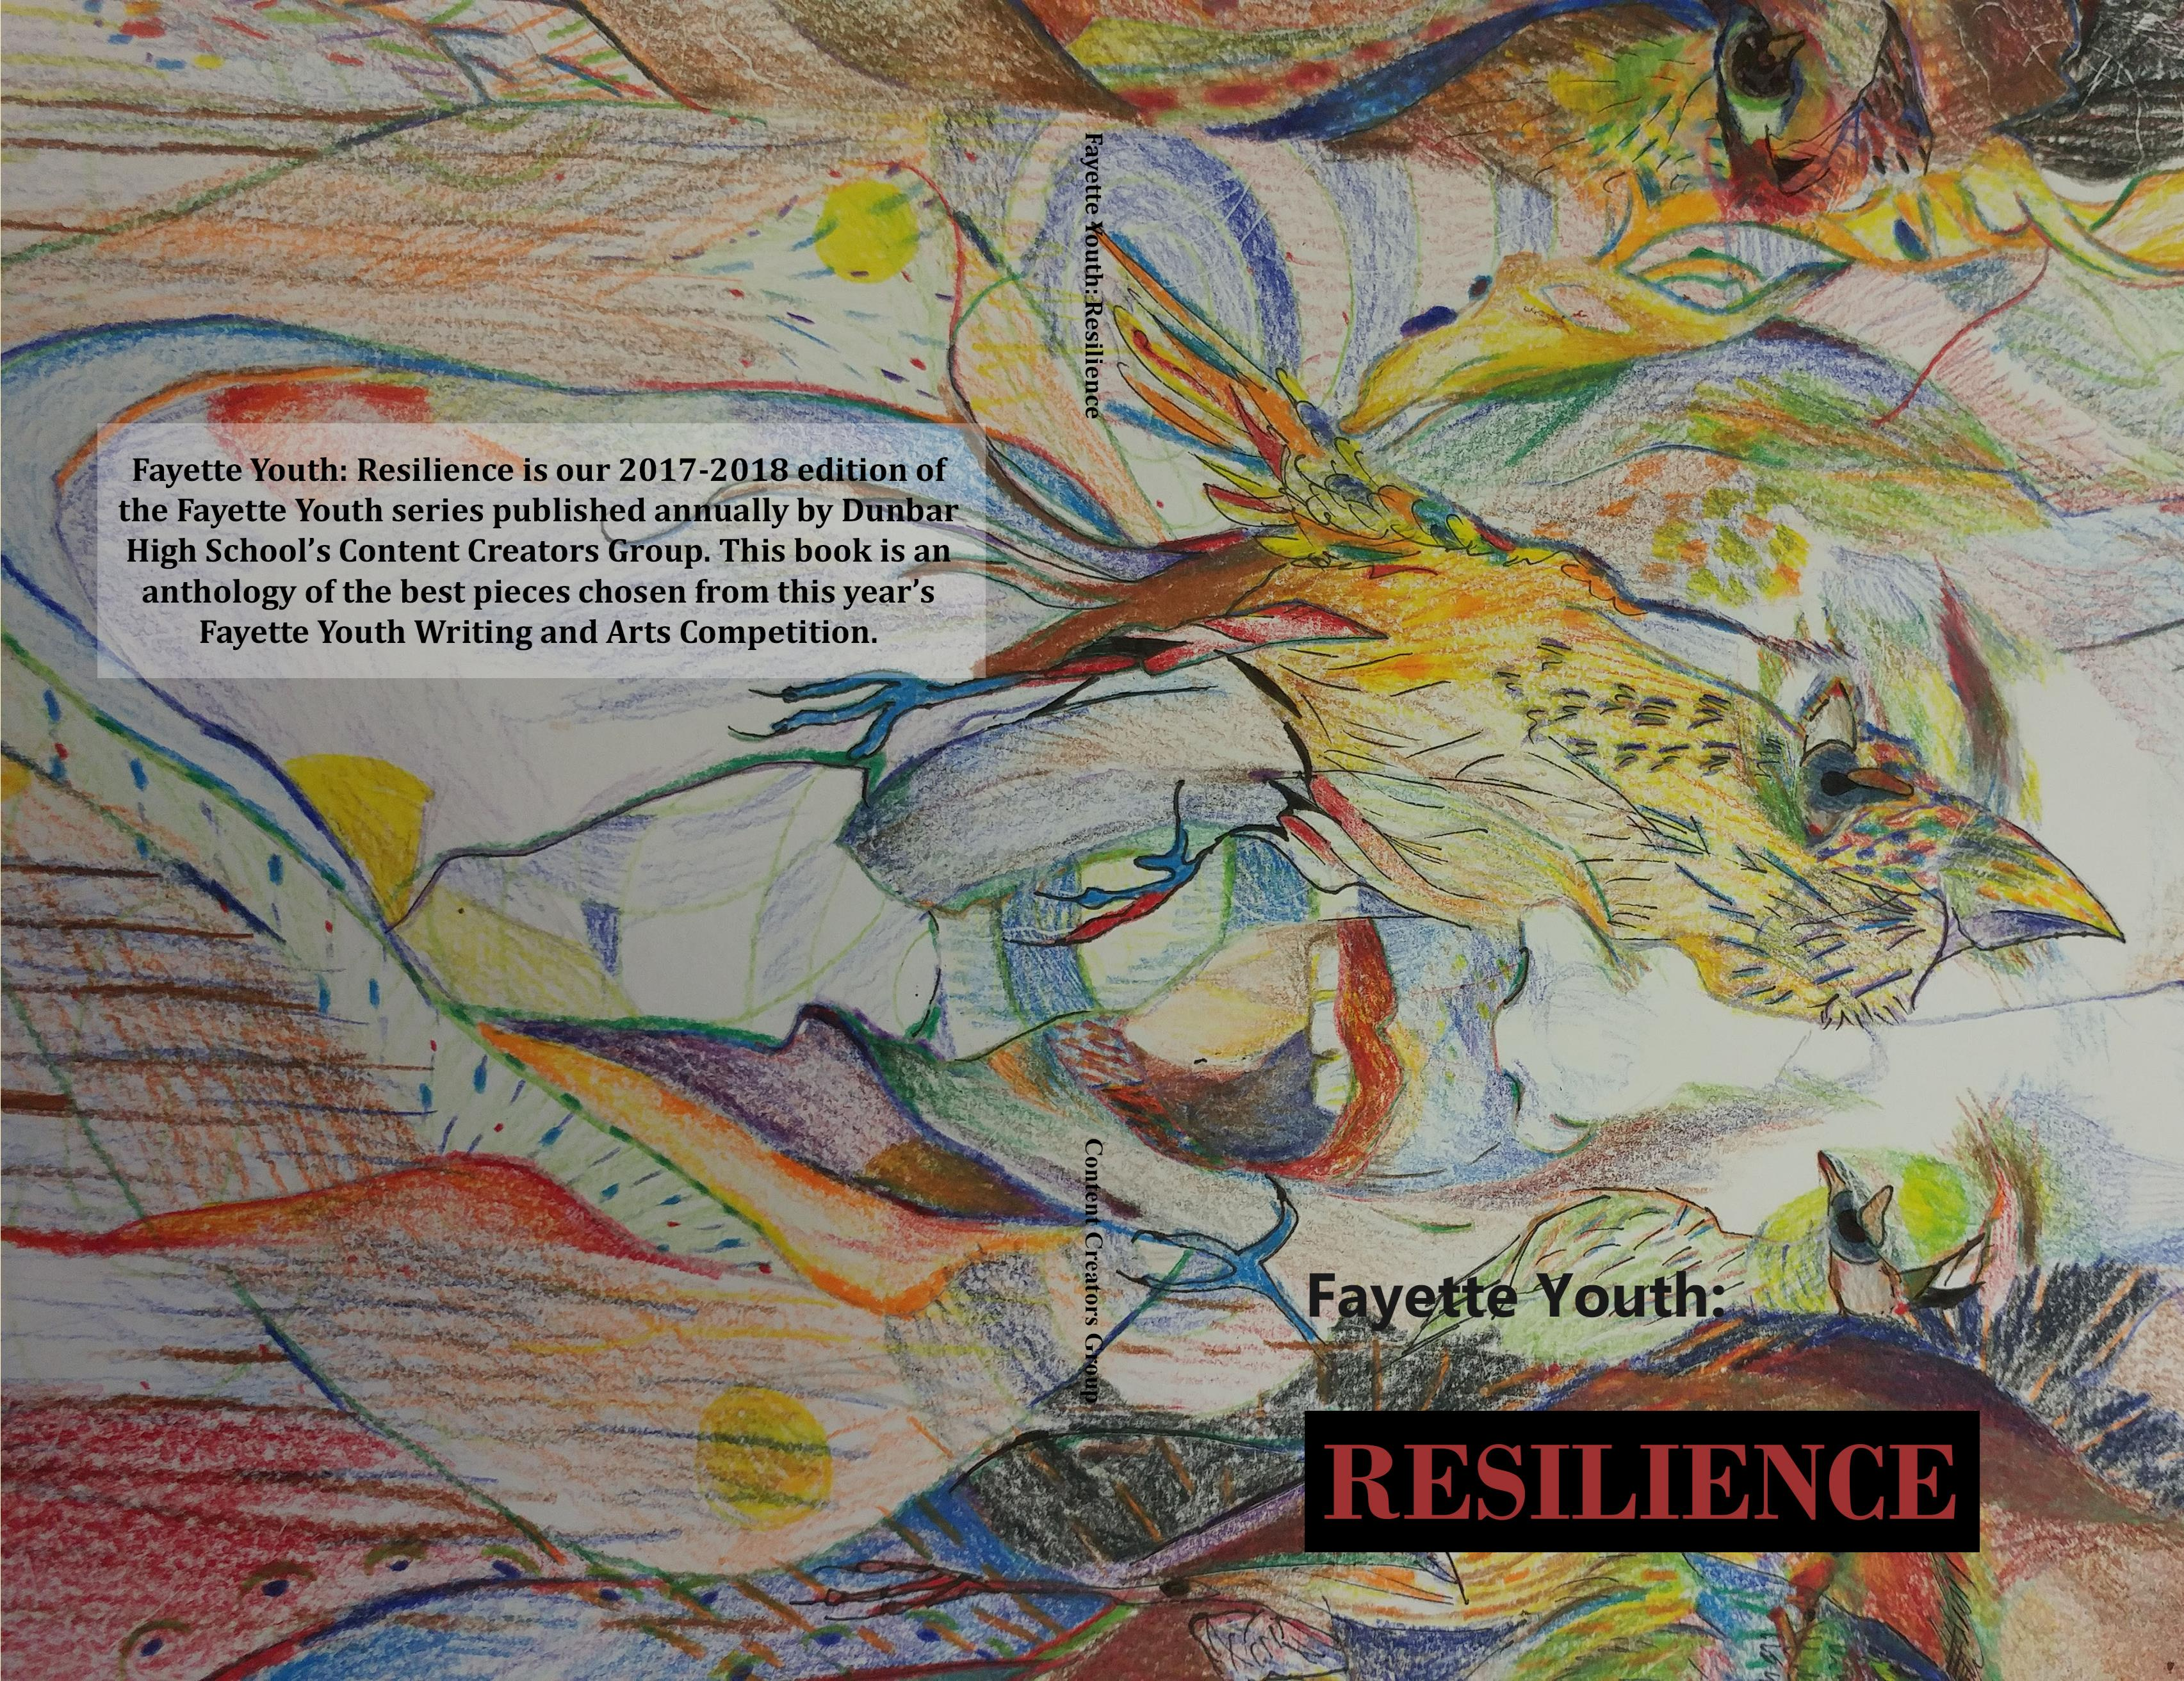 Fayette Youth: Resilience cover image